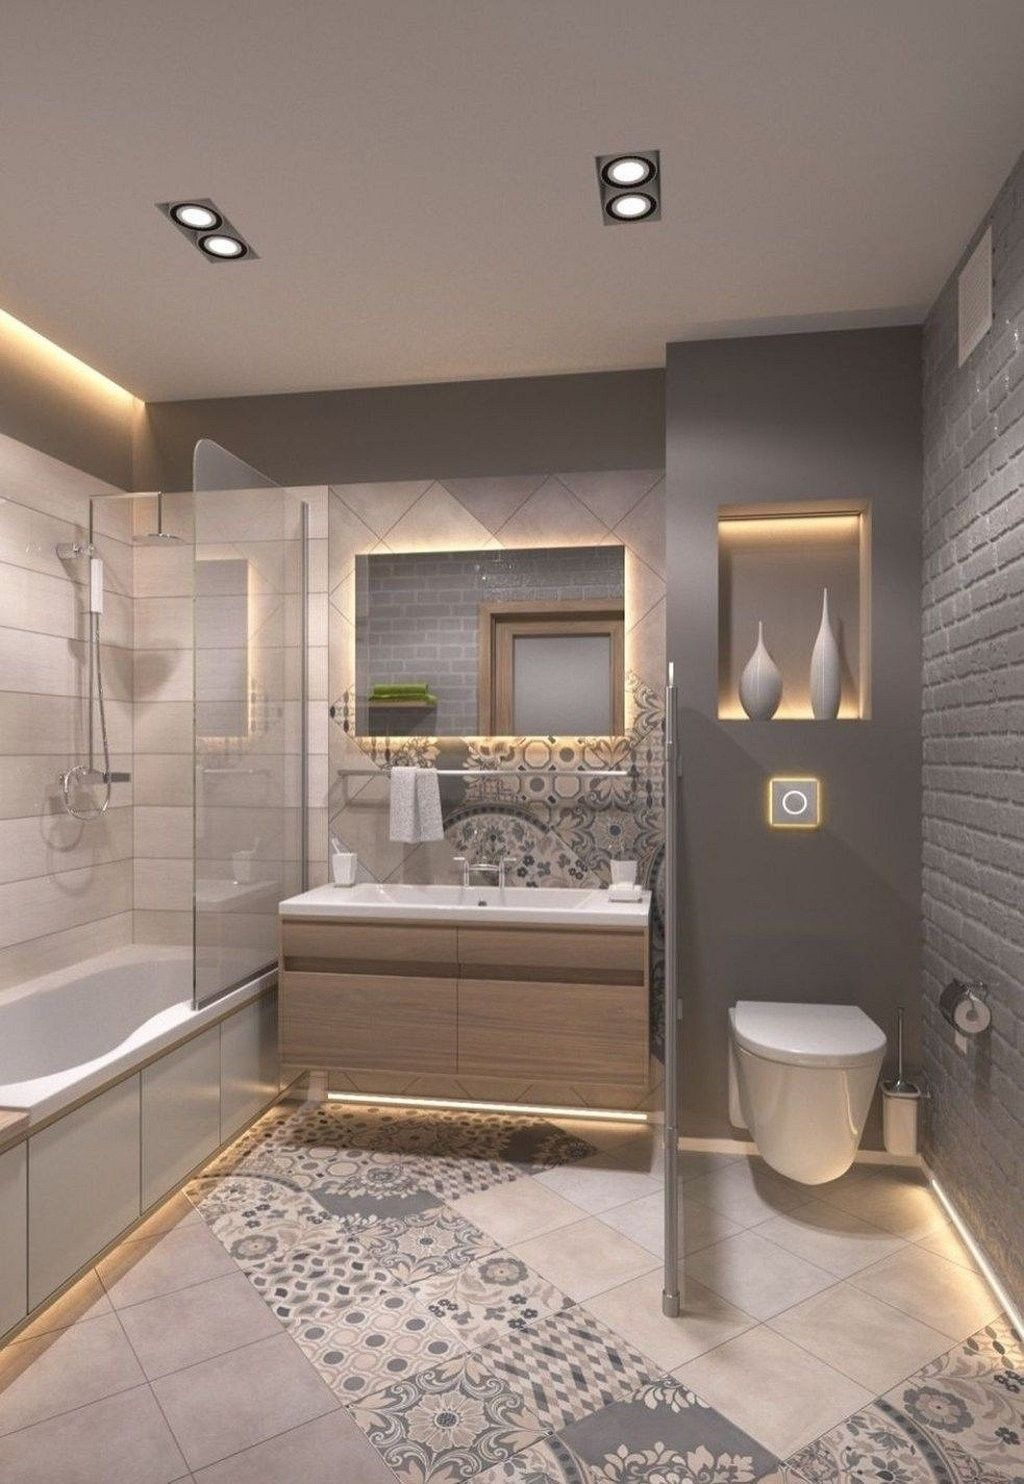 62 Small Bathroom Remodel Ideas Small Bathroom Styles Small Master Bathroom Bathroom Design Small